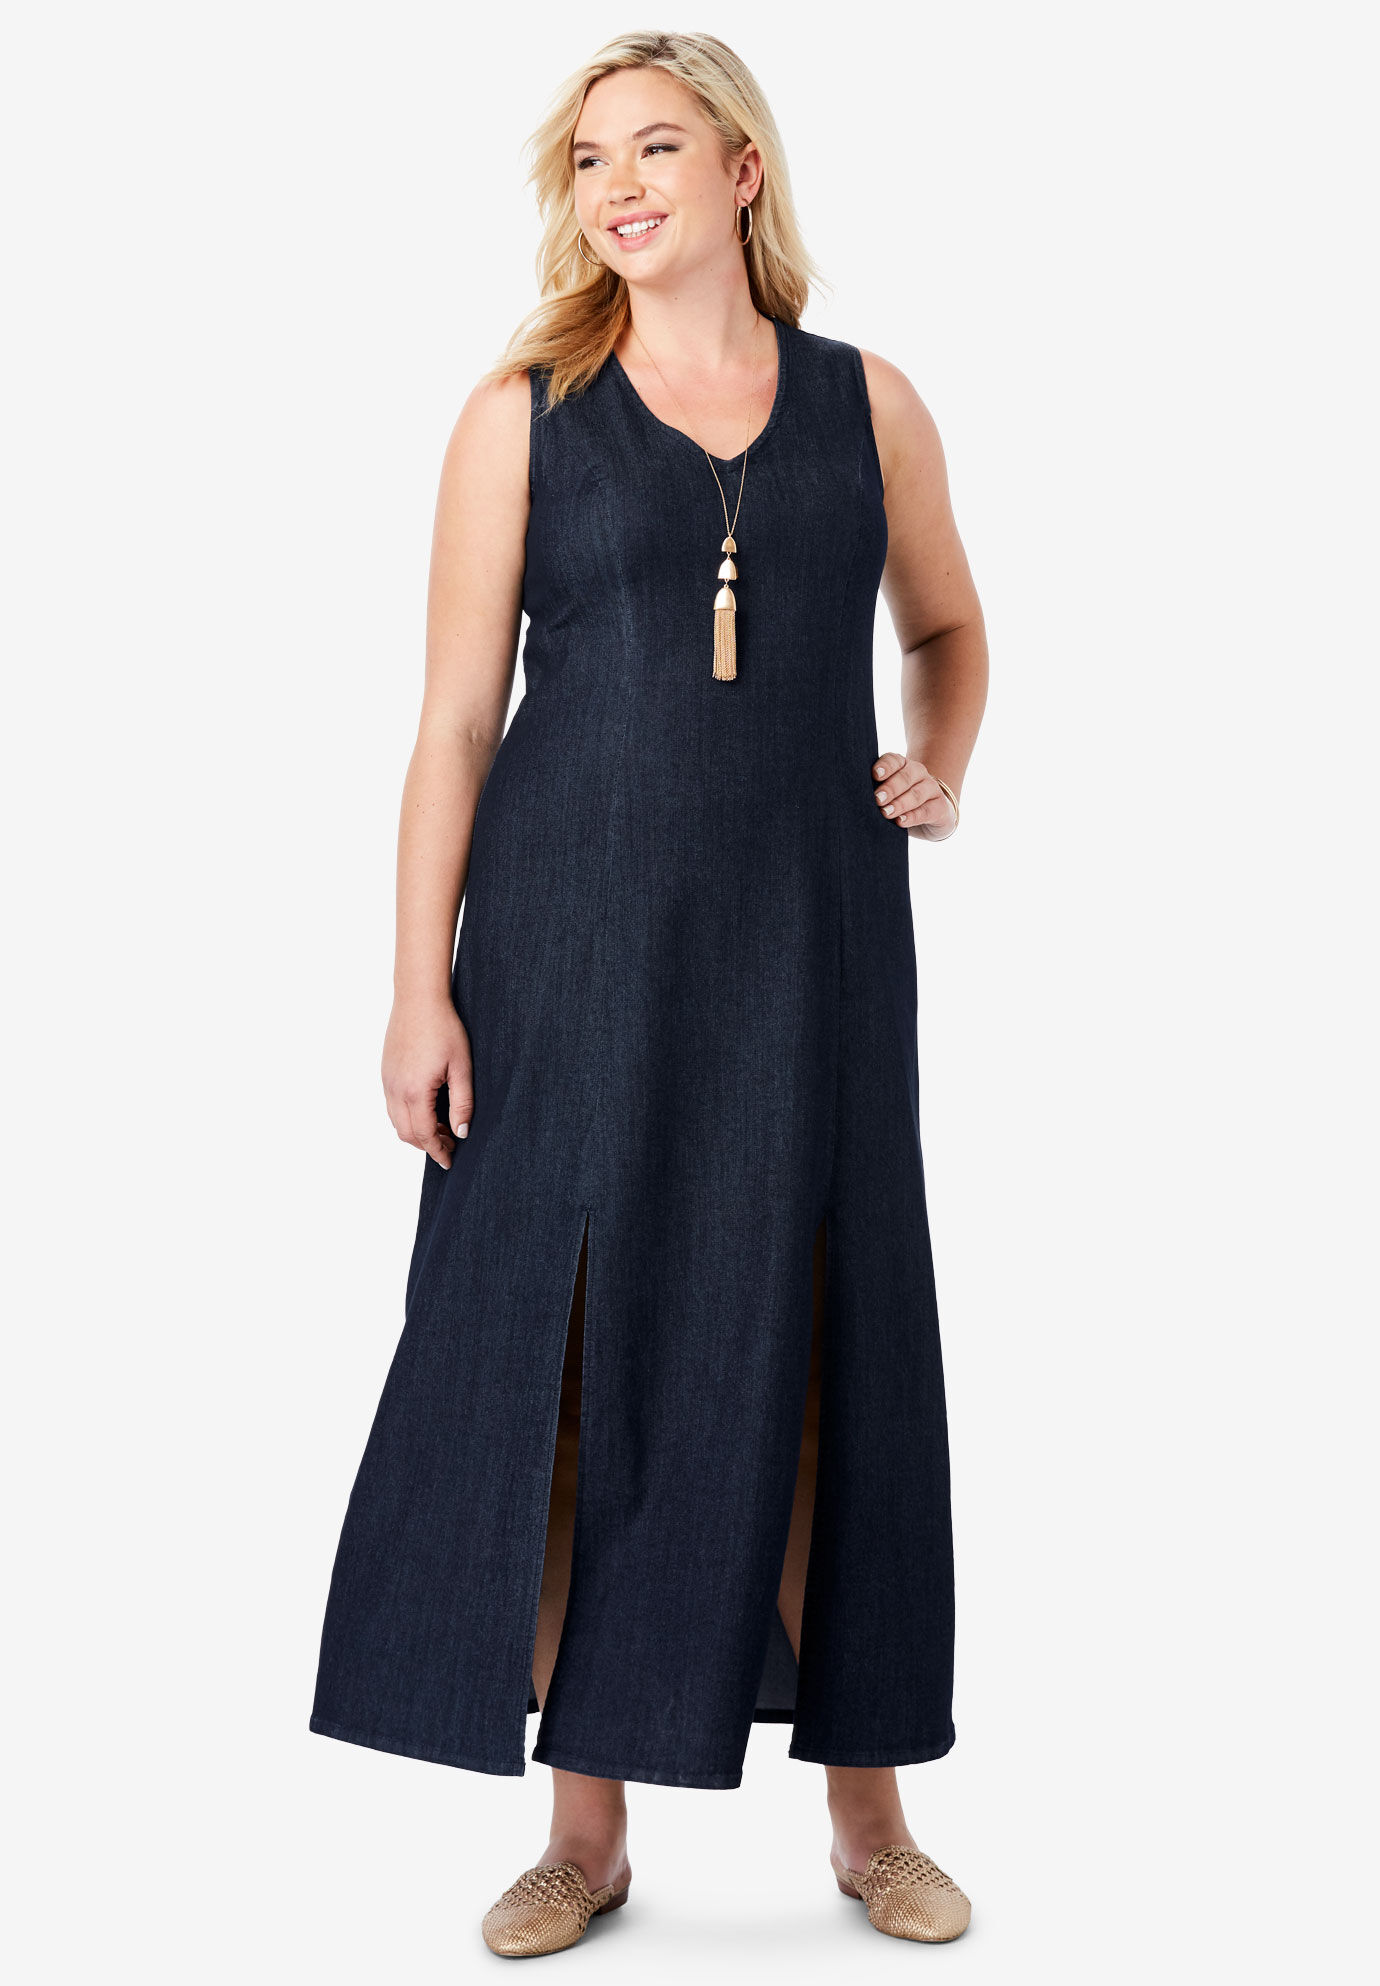 Denim 24//7 maxi dress plus size 24//26 black white tribal crinkle sleeveless